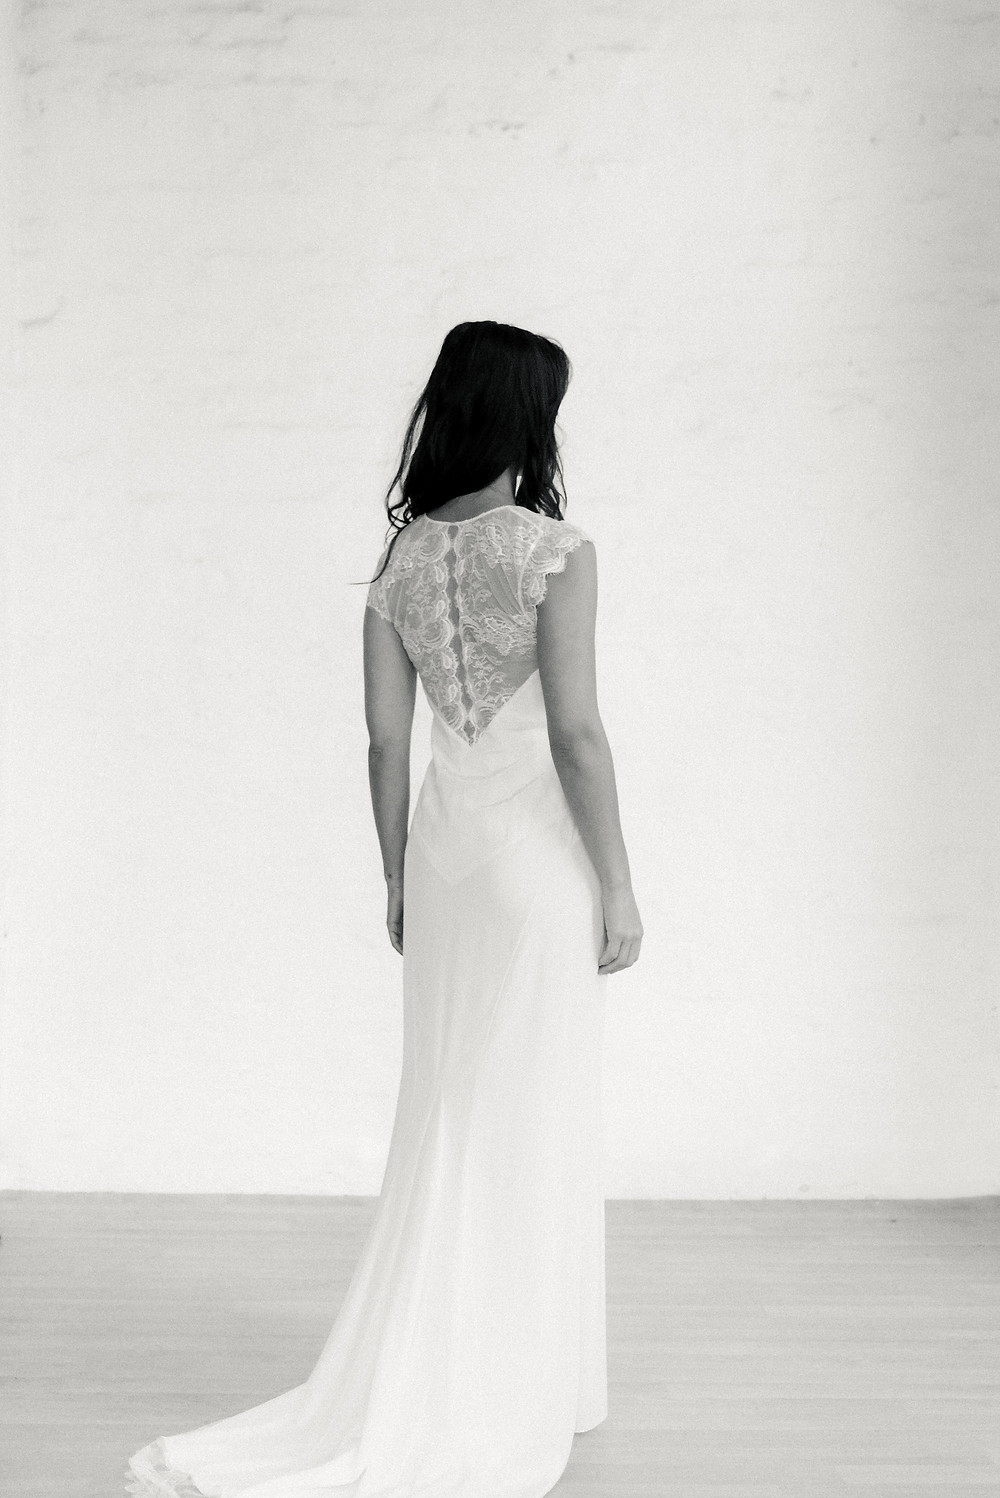 La Poésie silk and lace wedding gown Eve back view